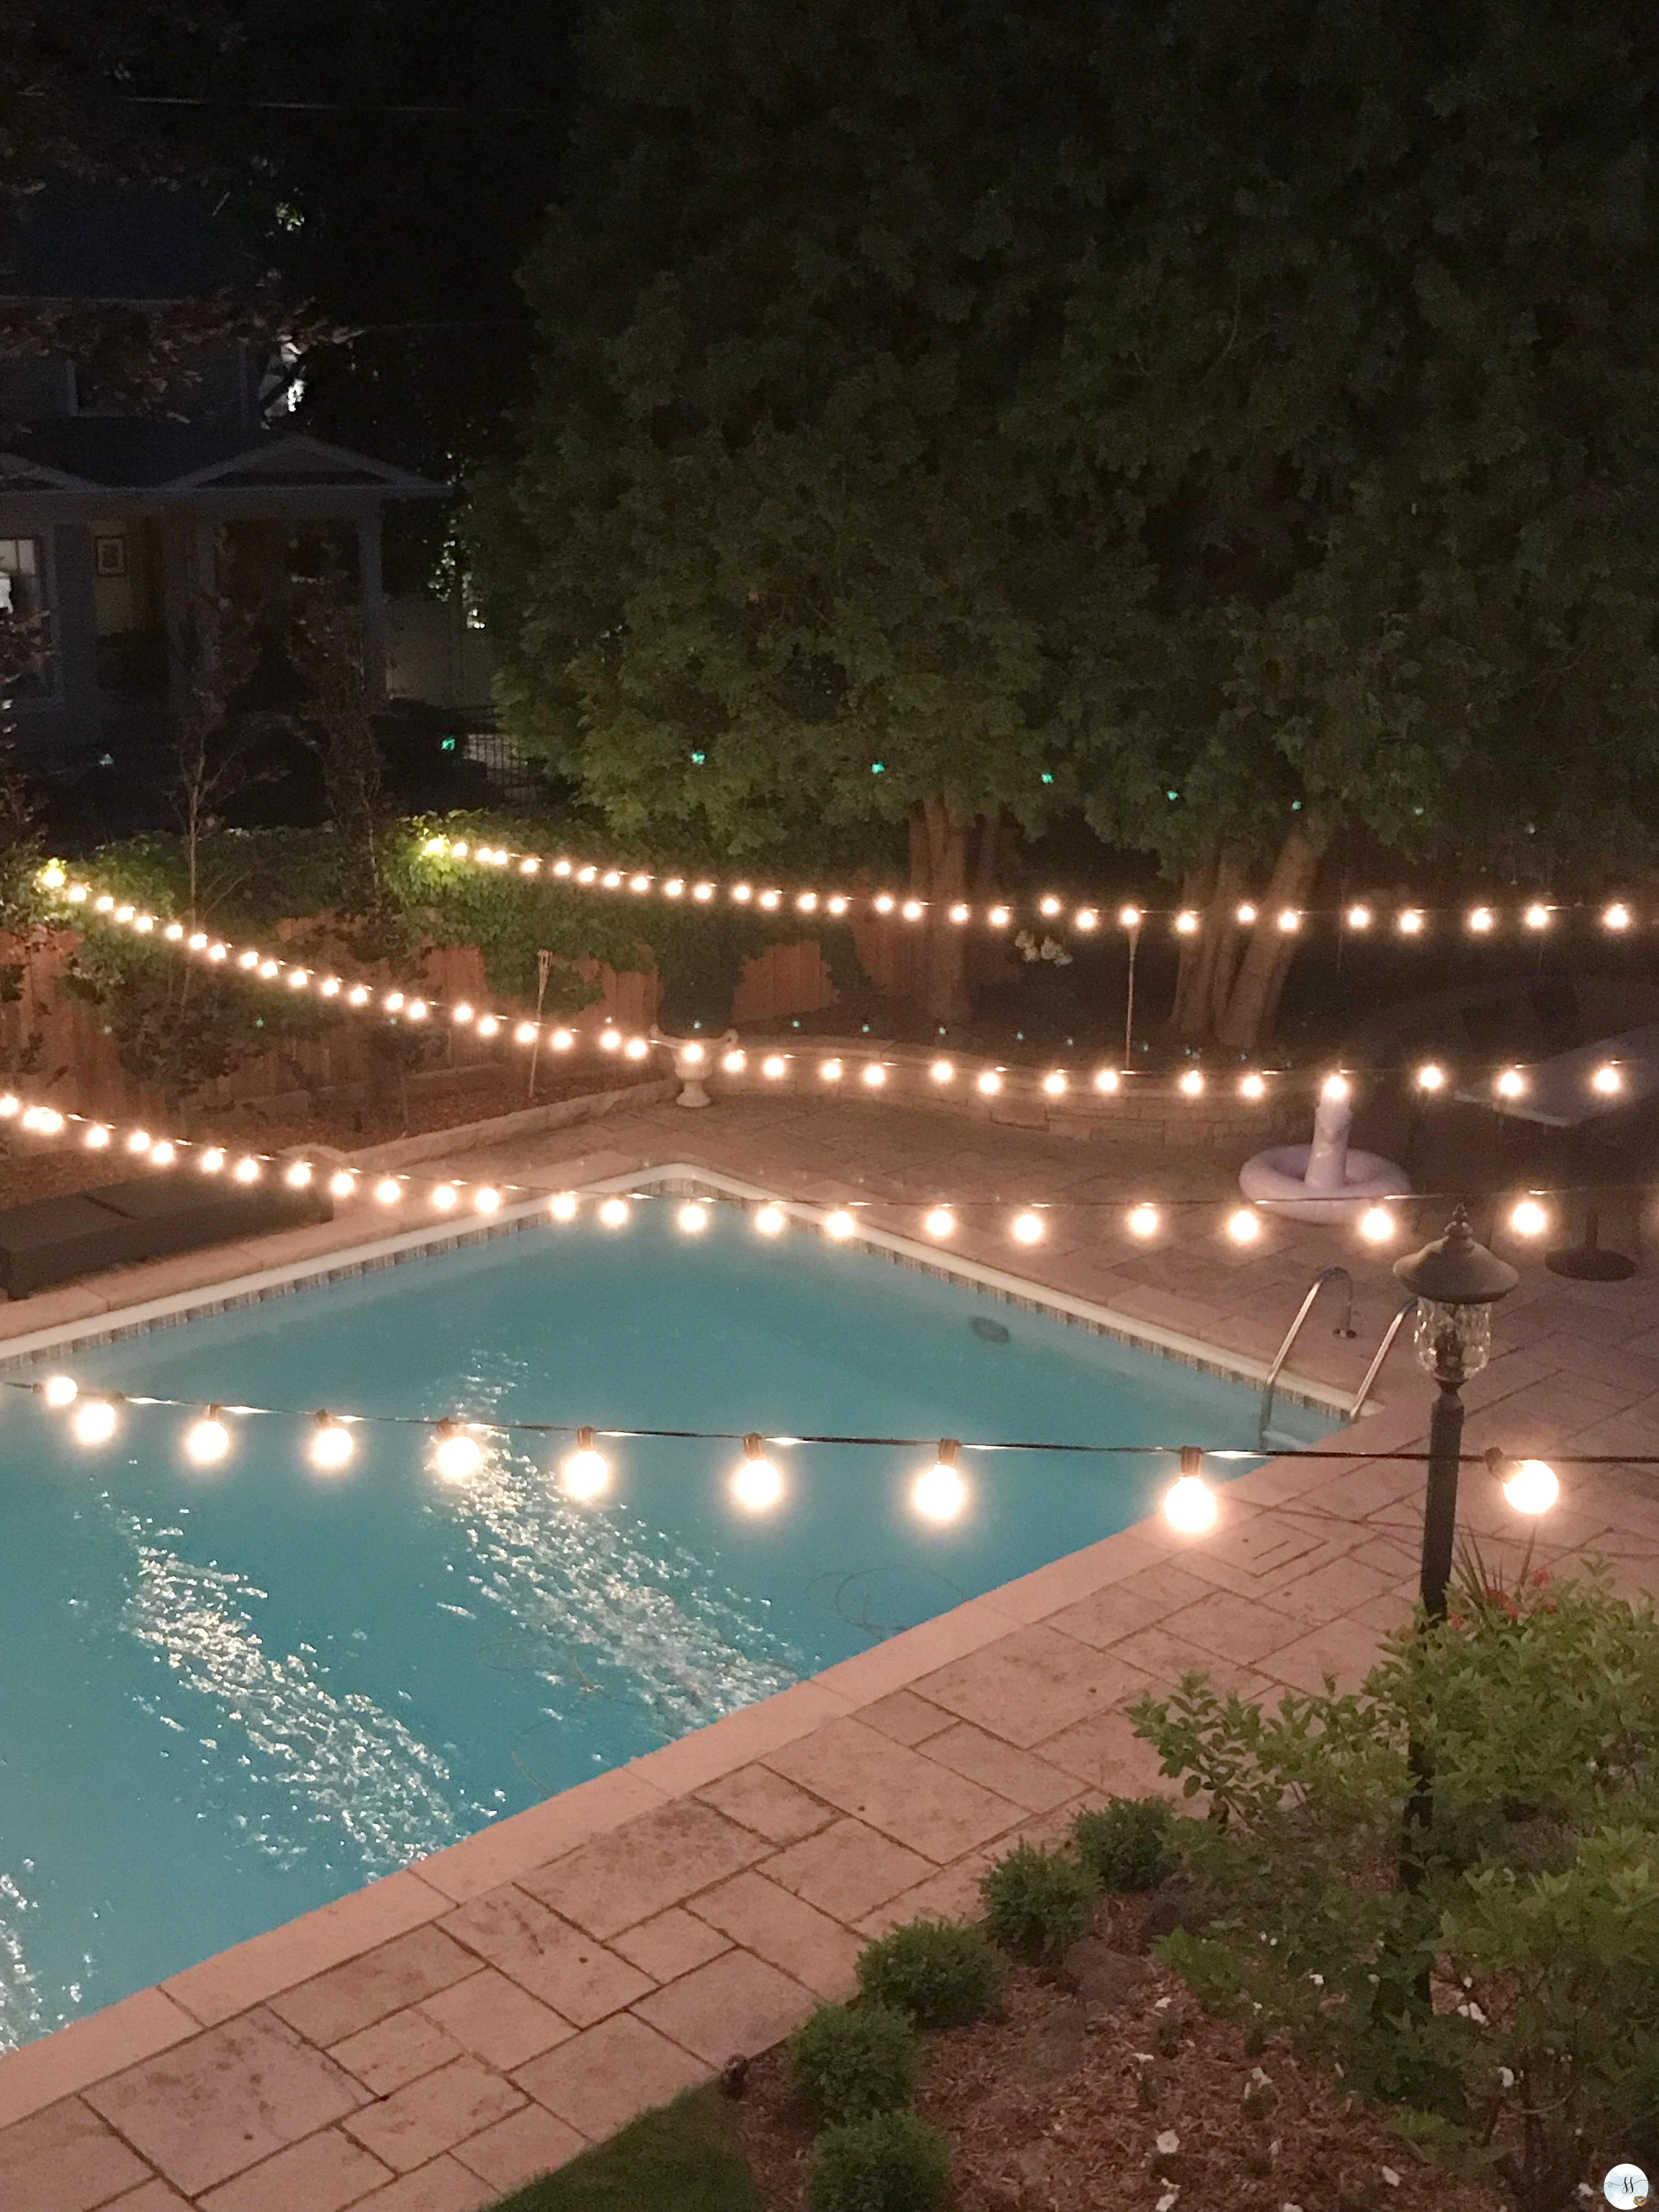 Patio lights add instant ambiance!